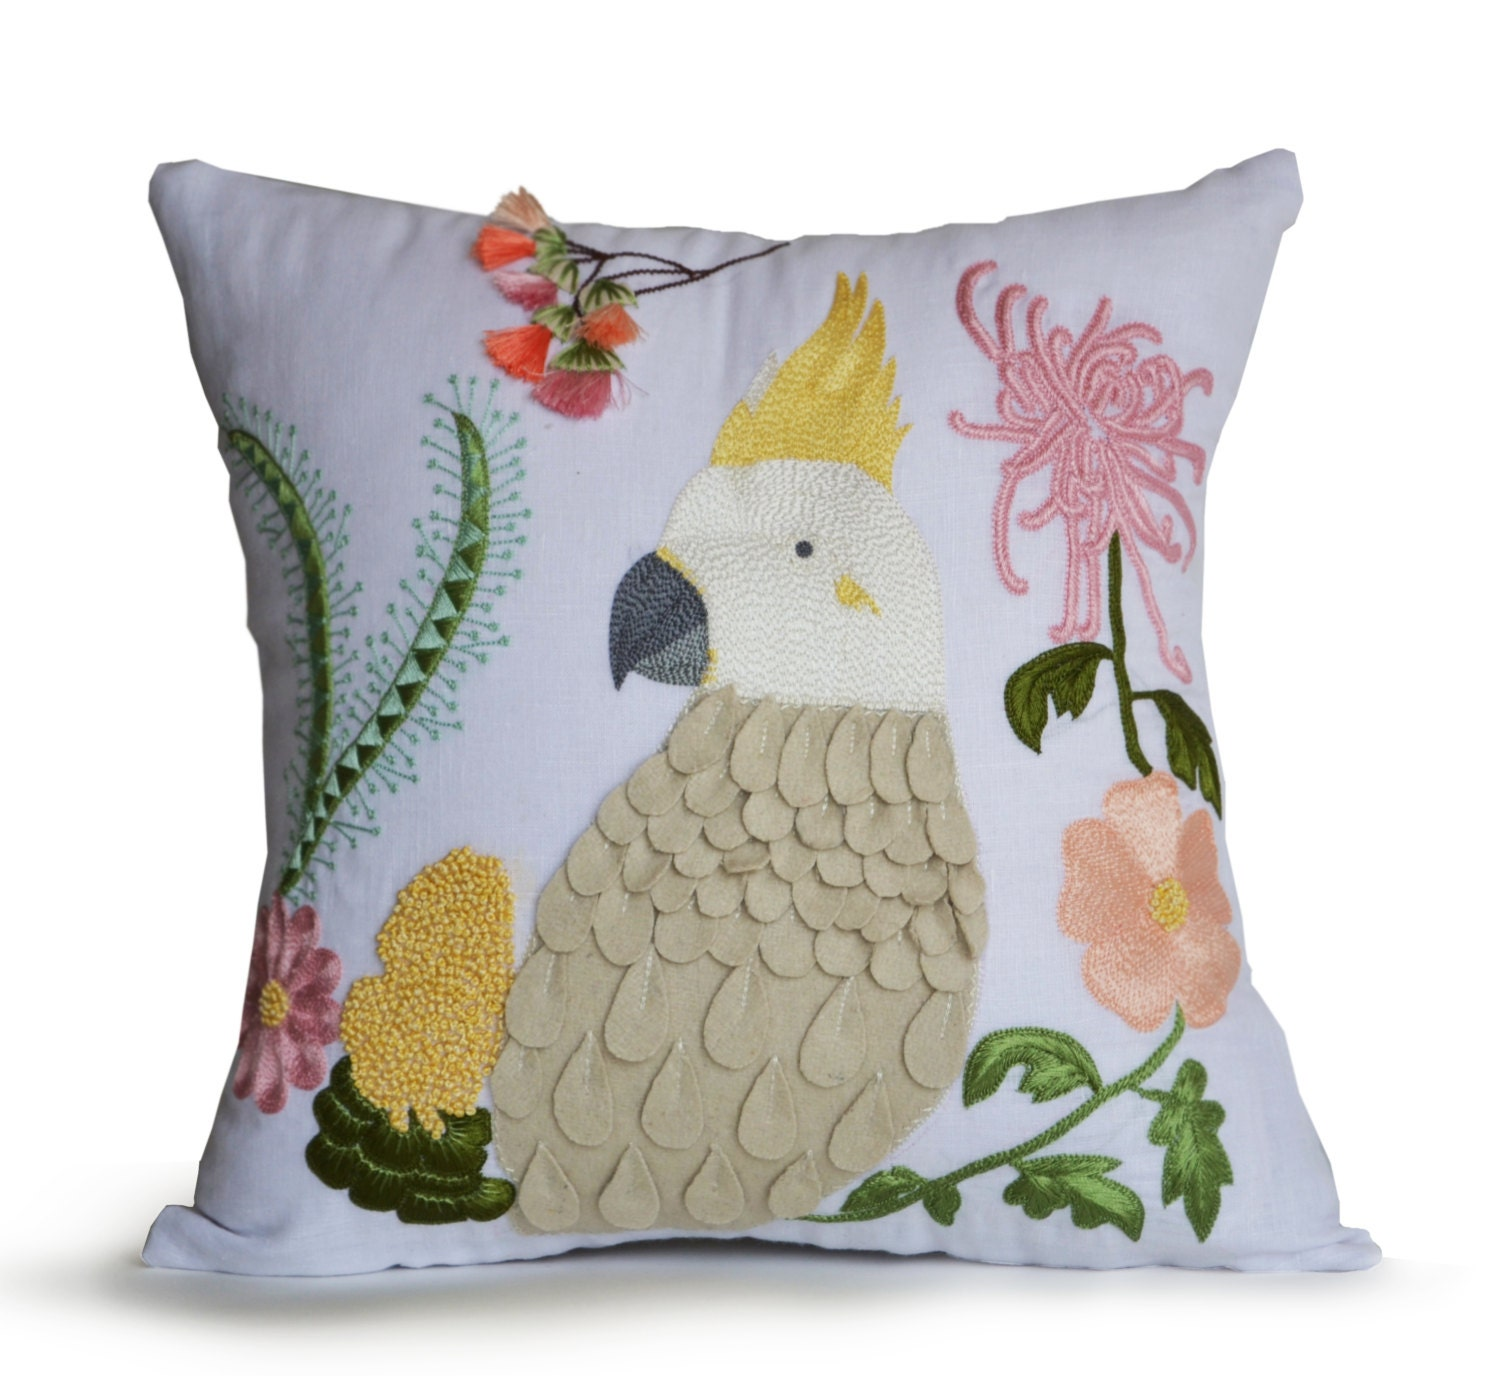 Newport Throw Pillows Birds : Throw Pillow Cover Decorative Pillow Bird Pillows Pink